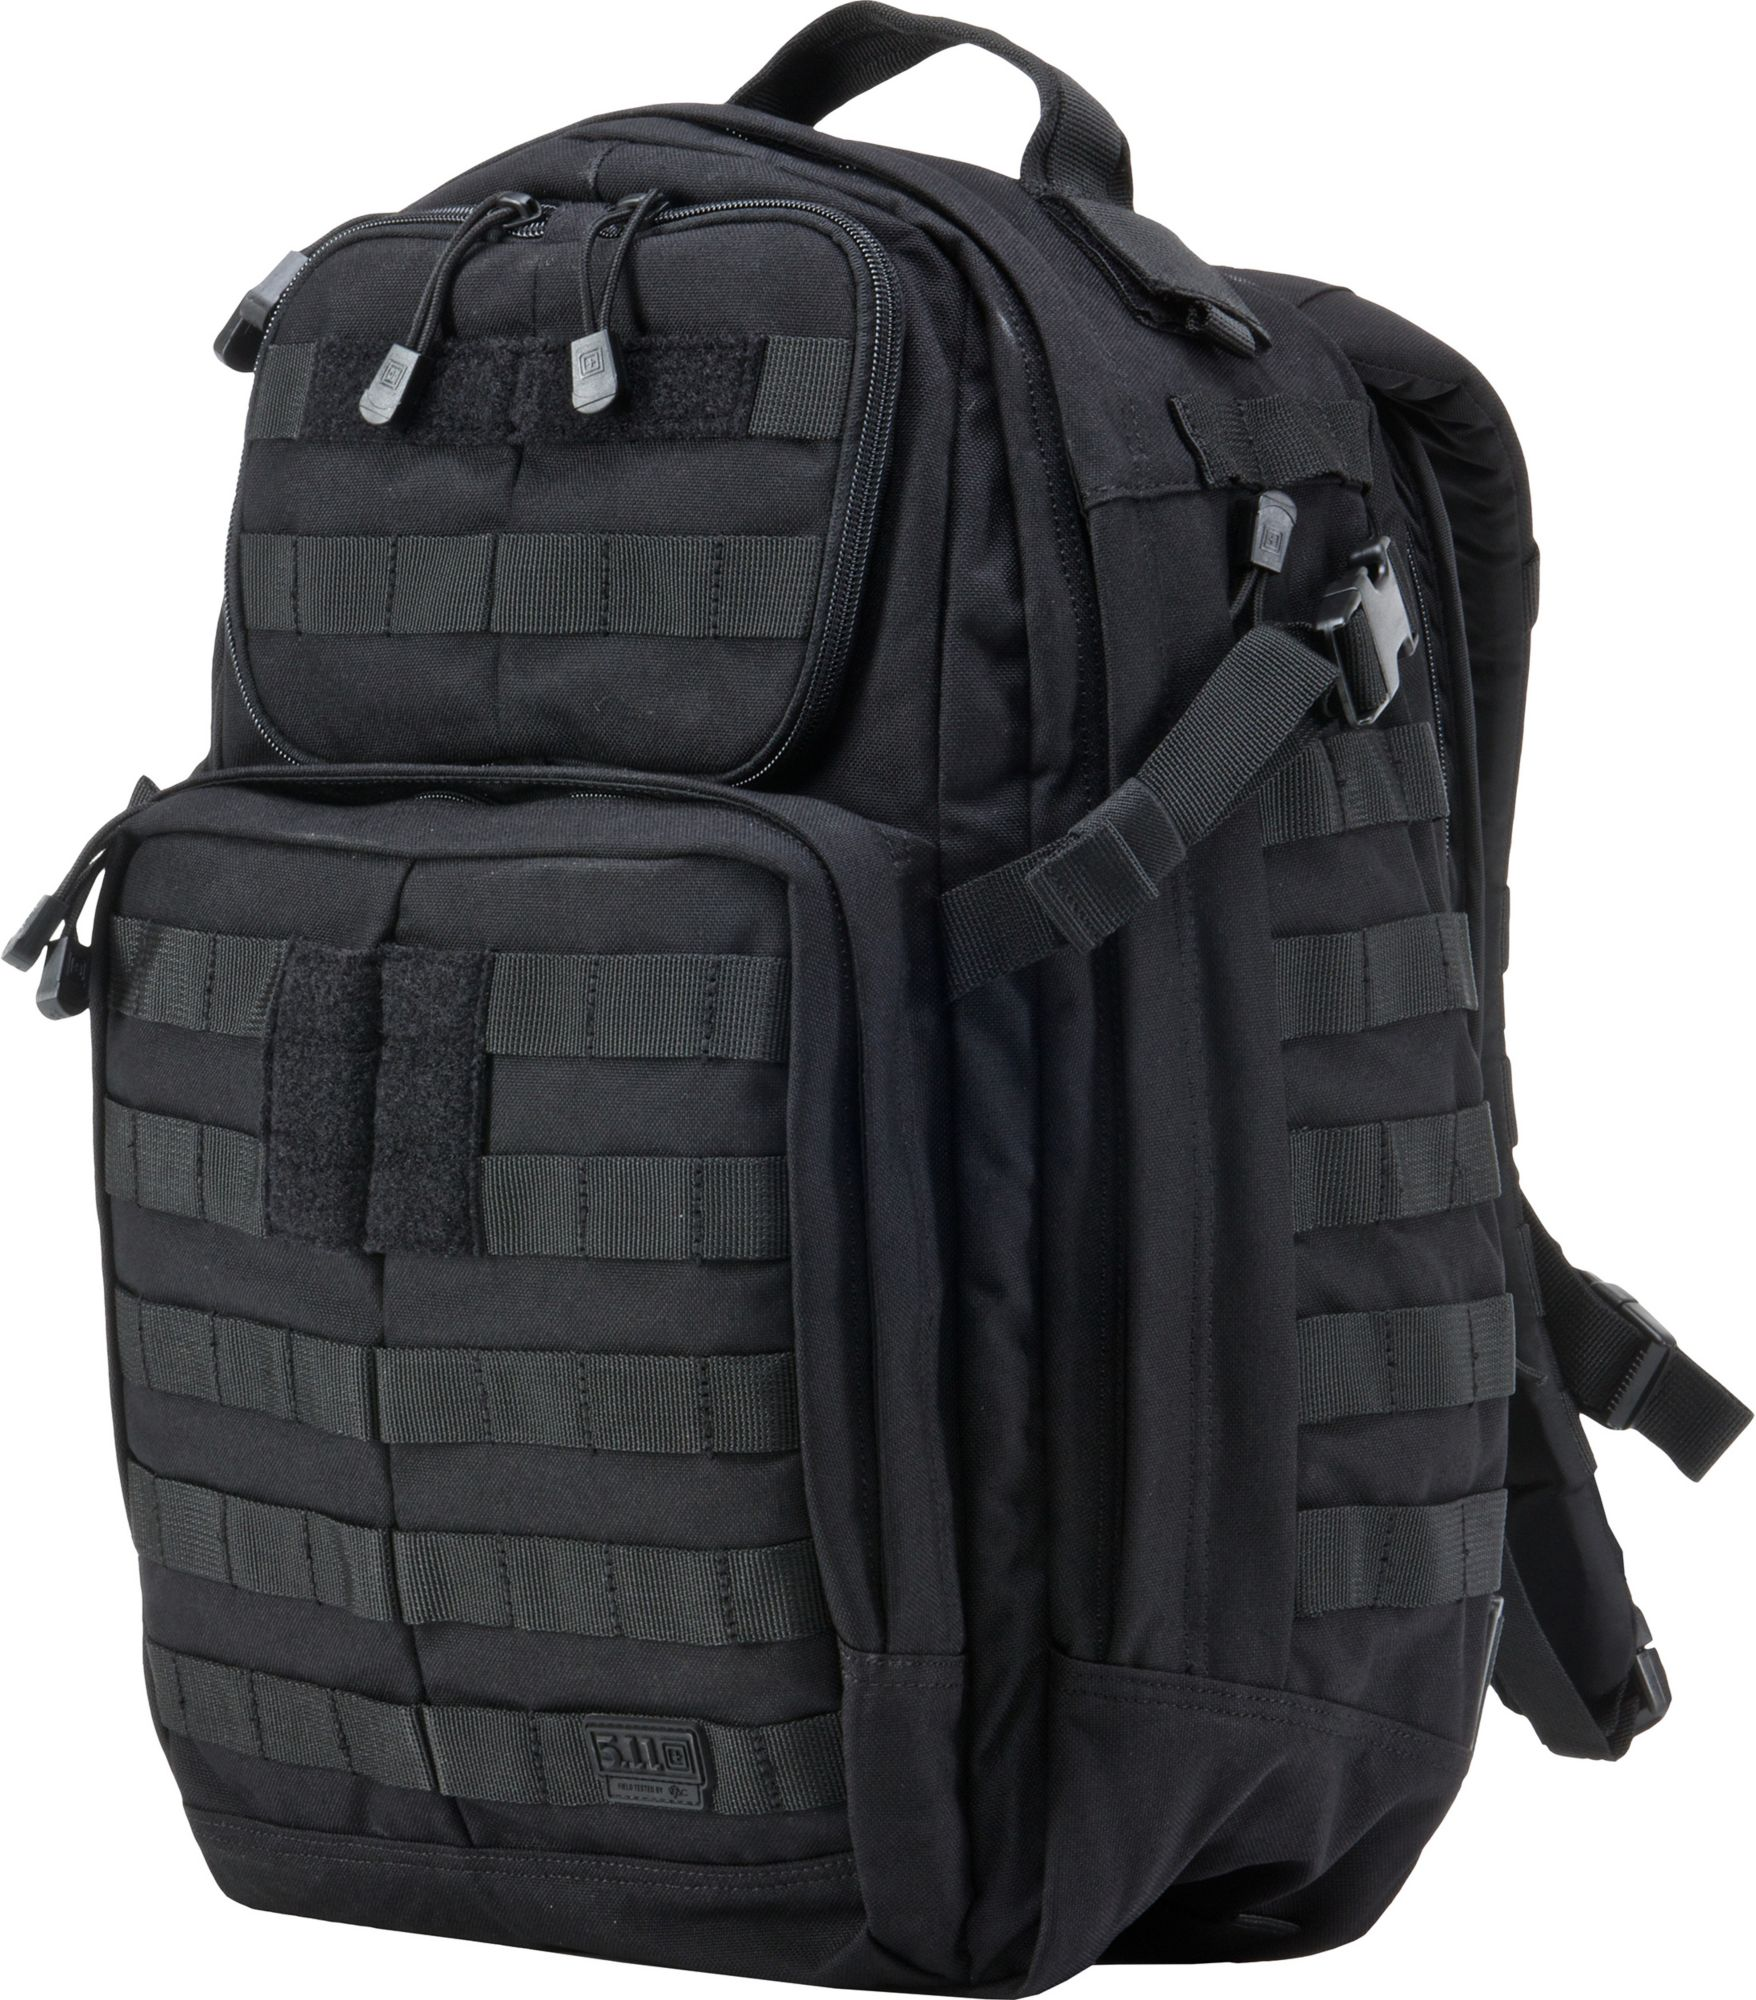 5.11 Tactical Rush 24 MultiCam Backpack, Black thumbnail